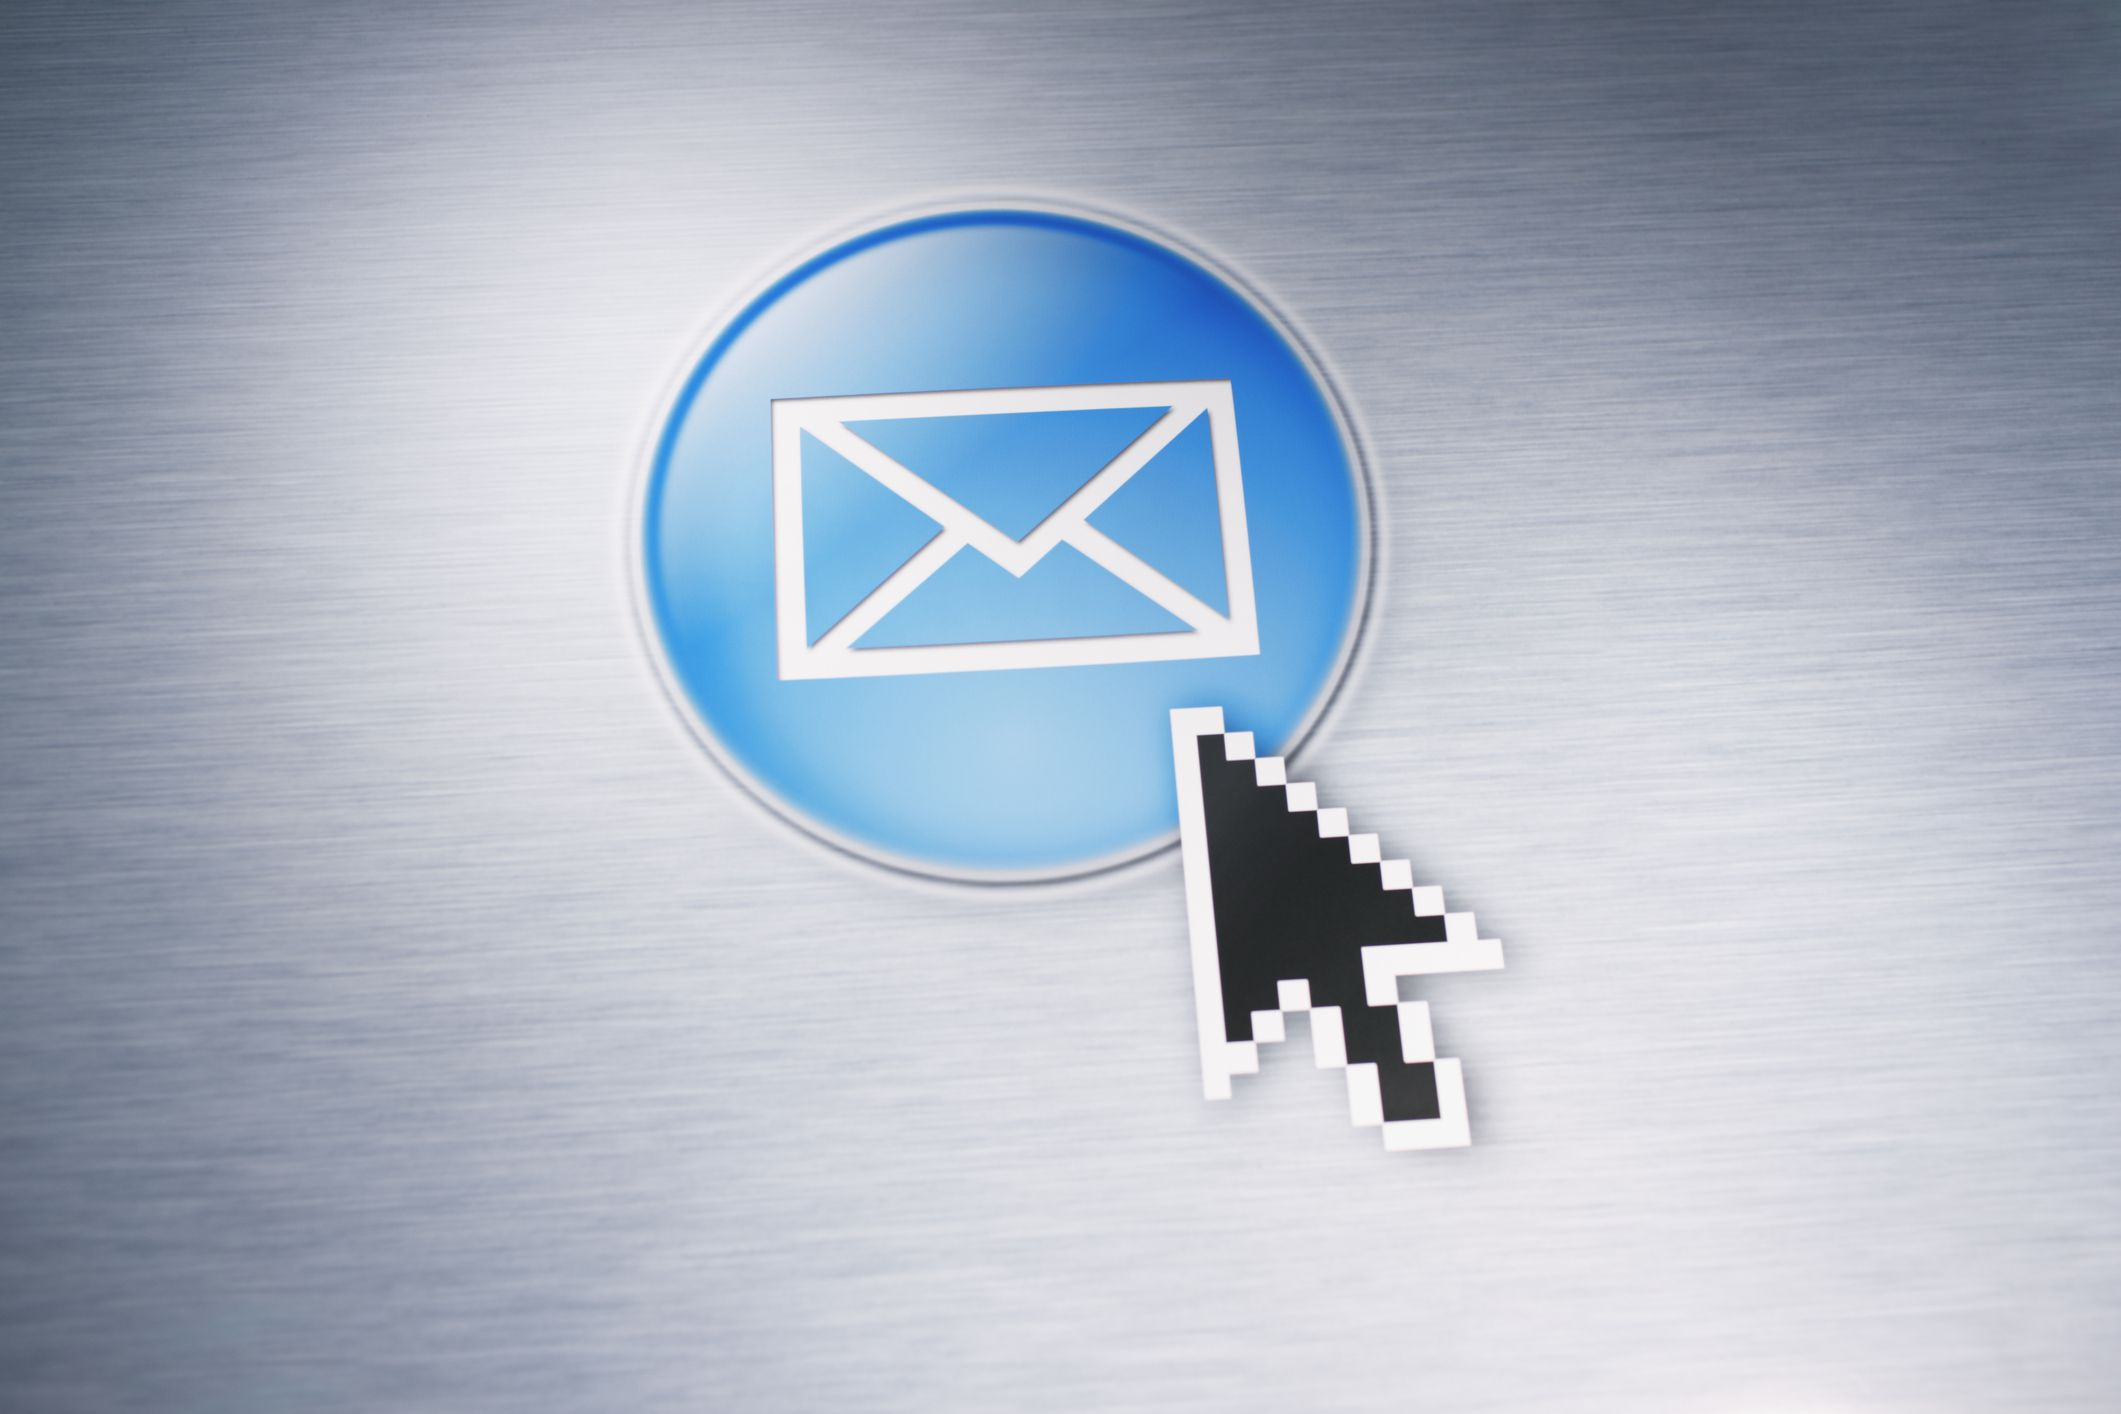 how to detect ip address from email